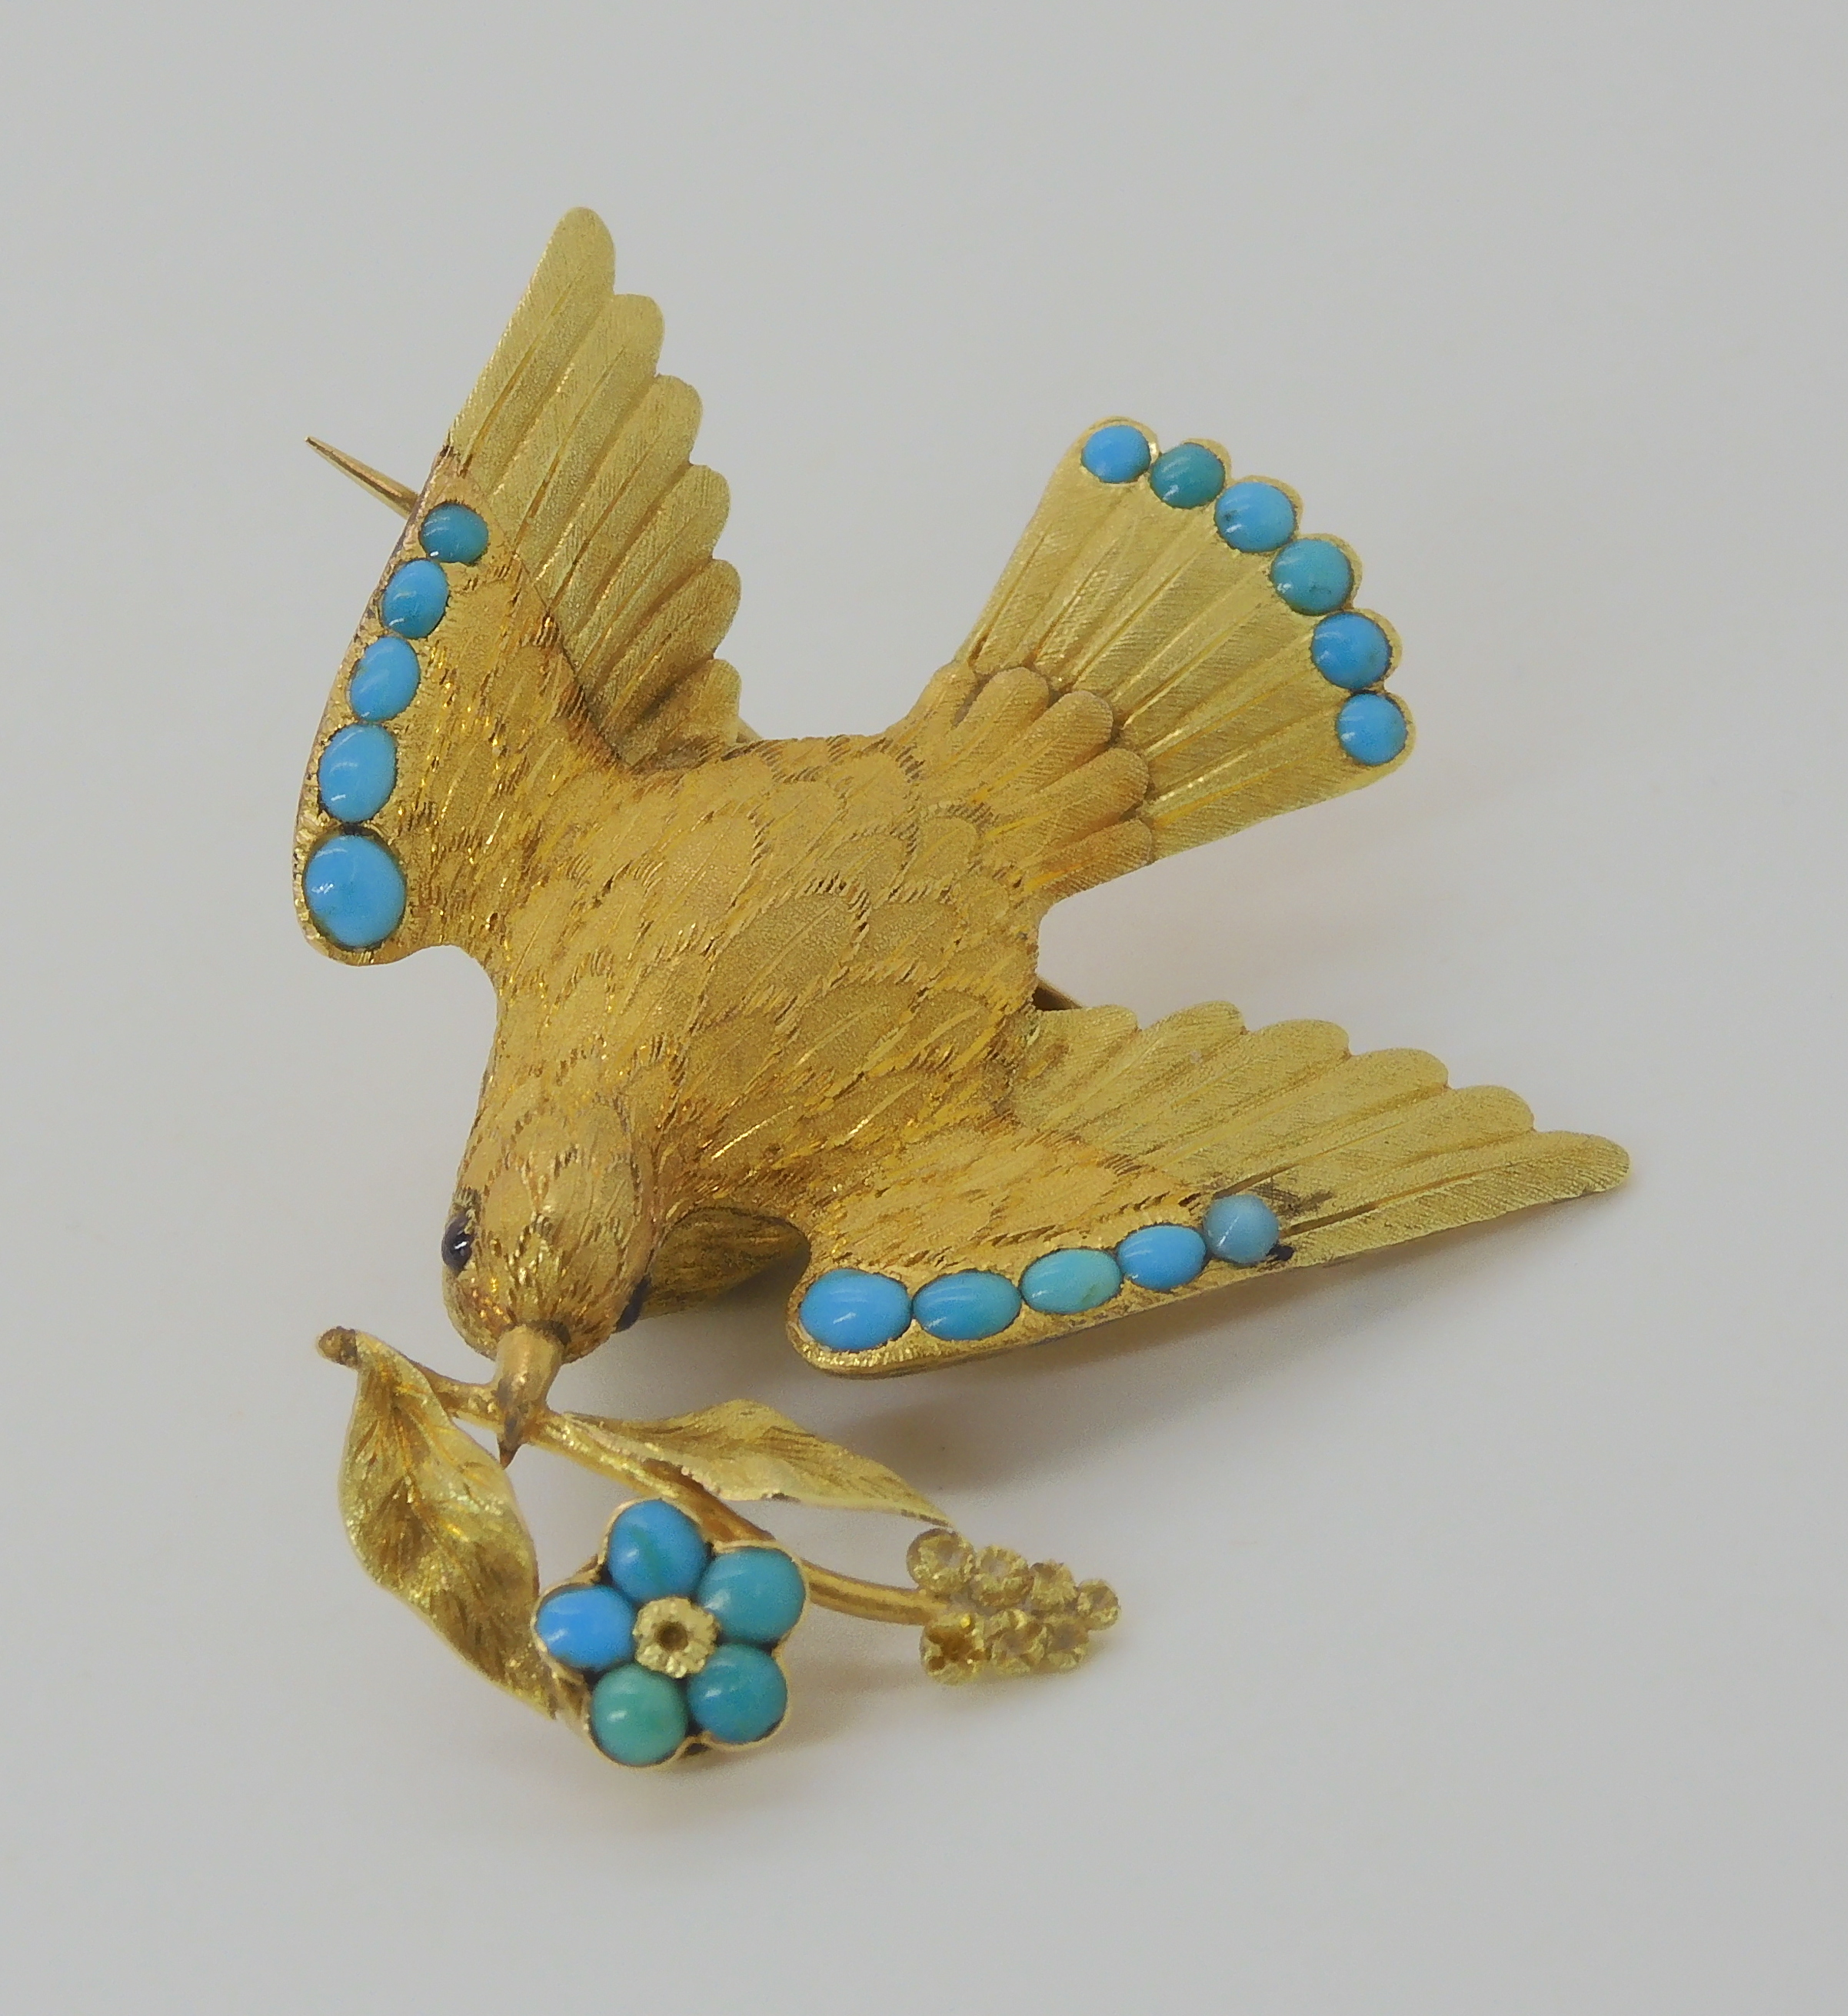 A VICTORIAN LOCKET BACK DOVE BROOCH SET WITH TURQUOISE craftsman made in yellow metal, with - Image 3 of 6